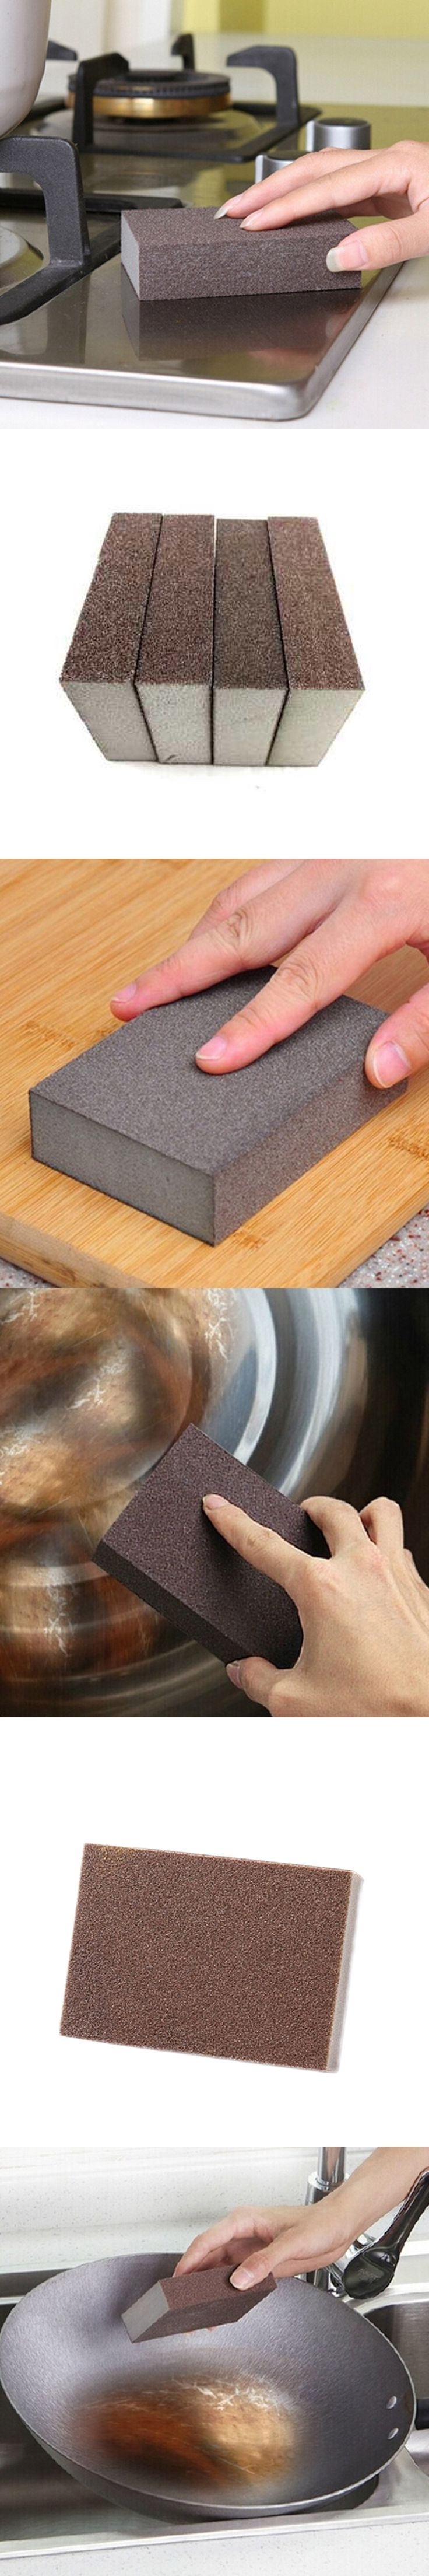 Rectangular Fine Sanding Sponge Block Reusable Wet Dry Blocks Coke Stains Helper